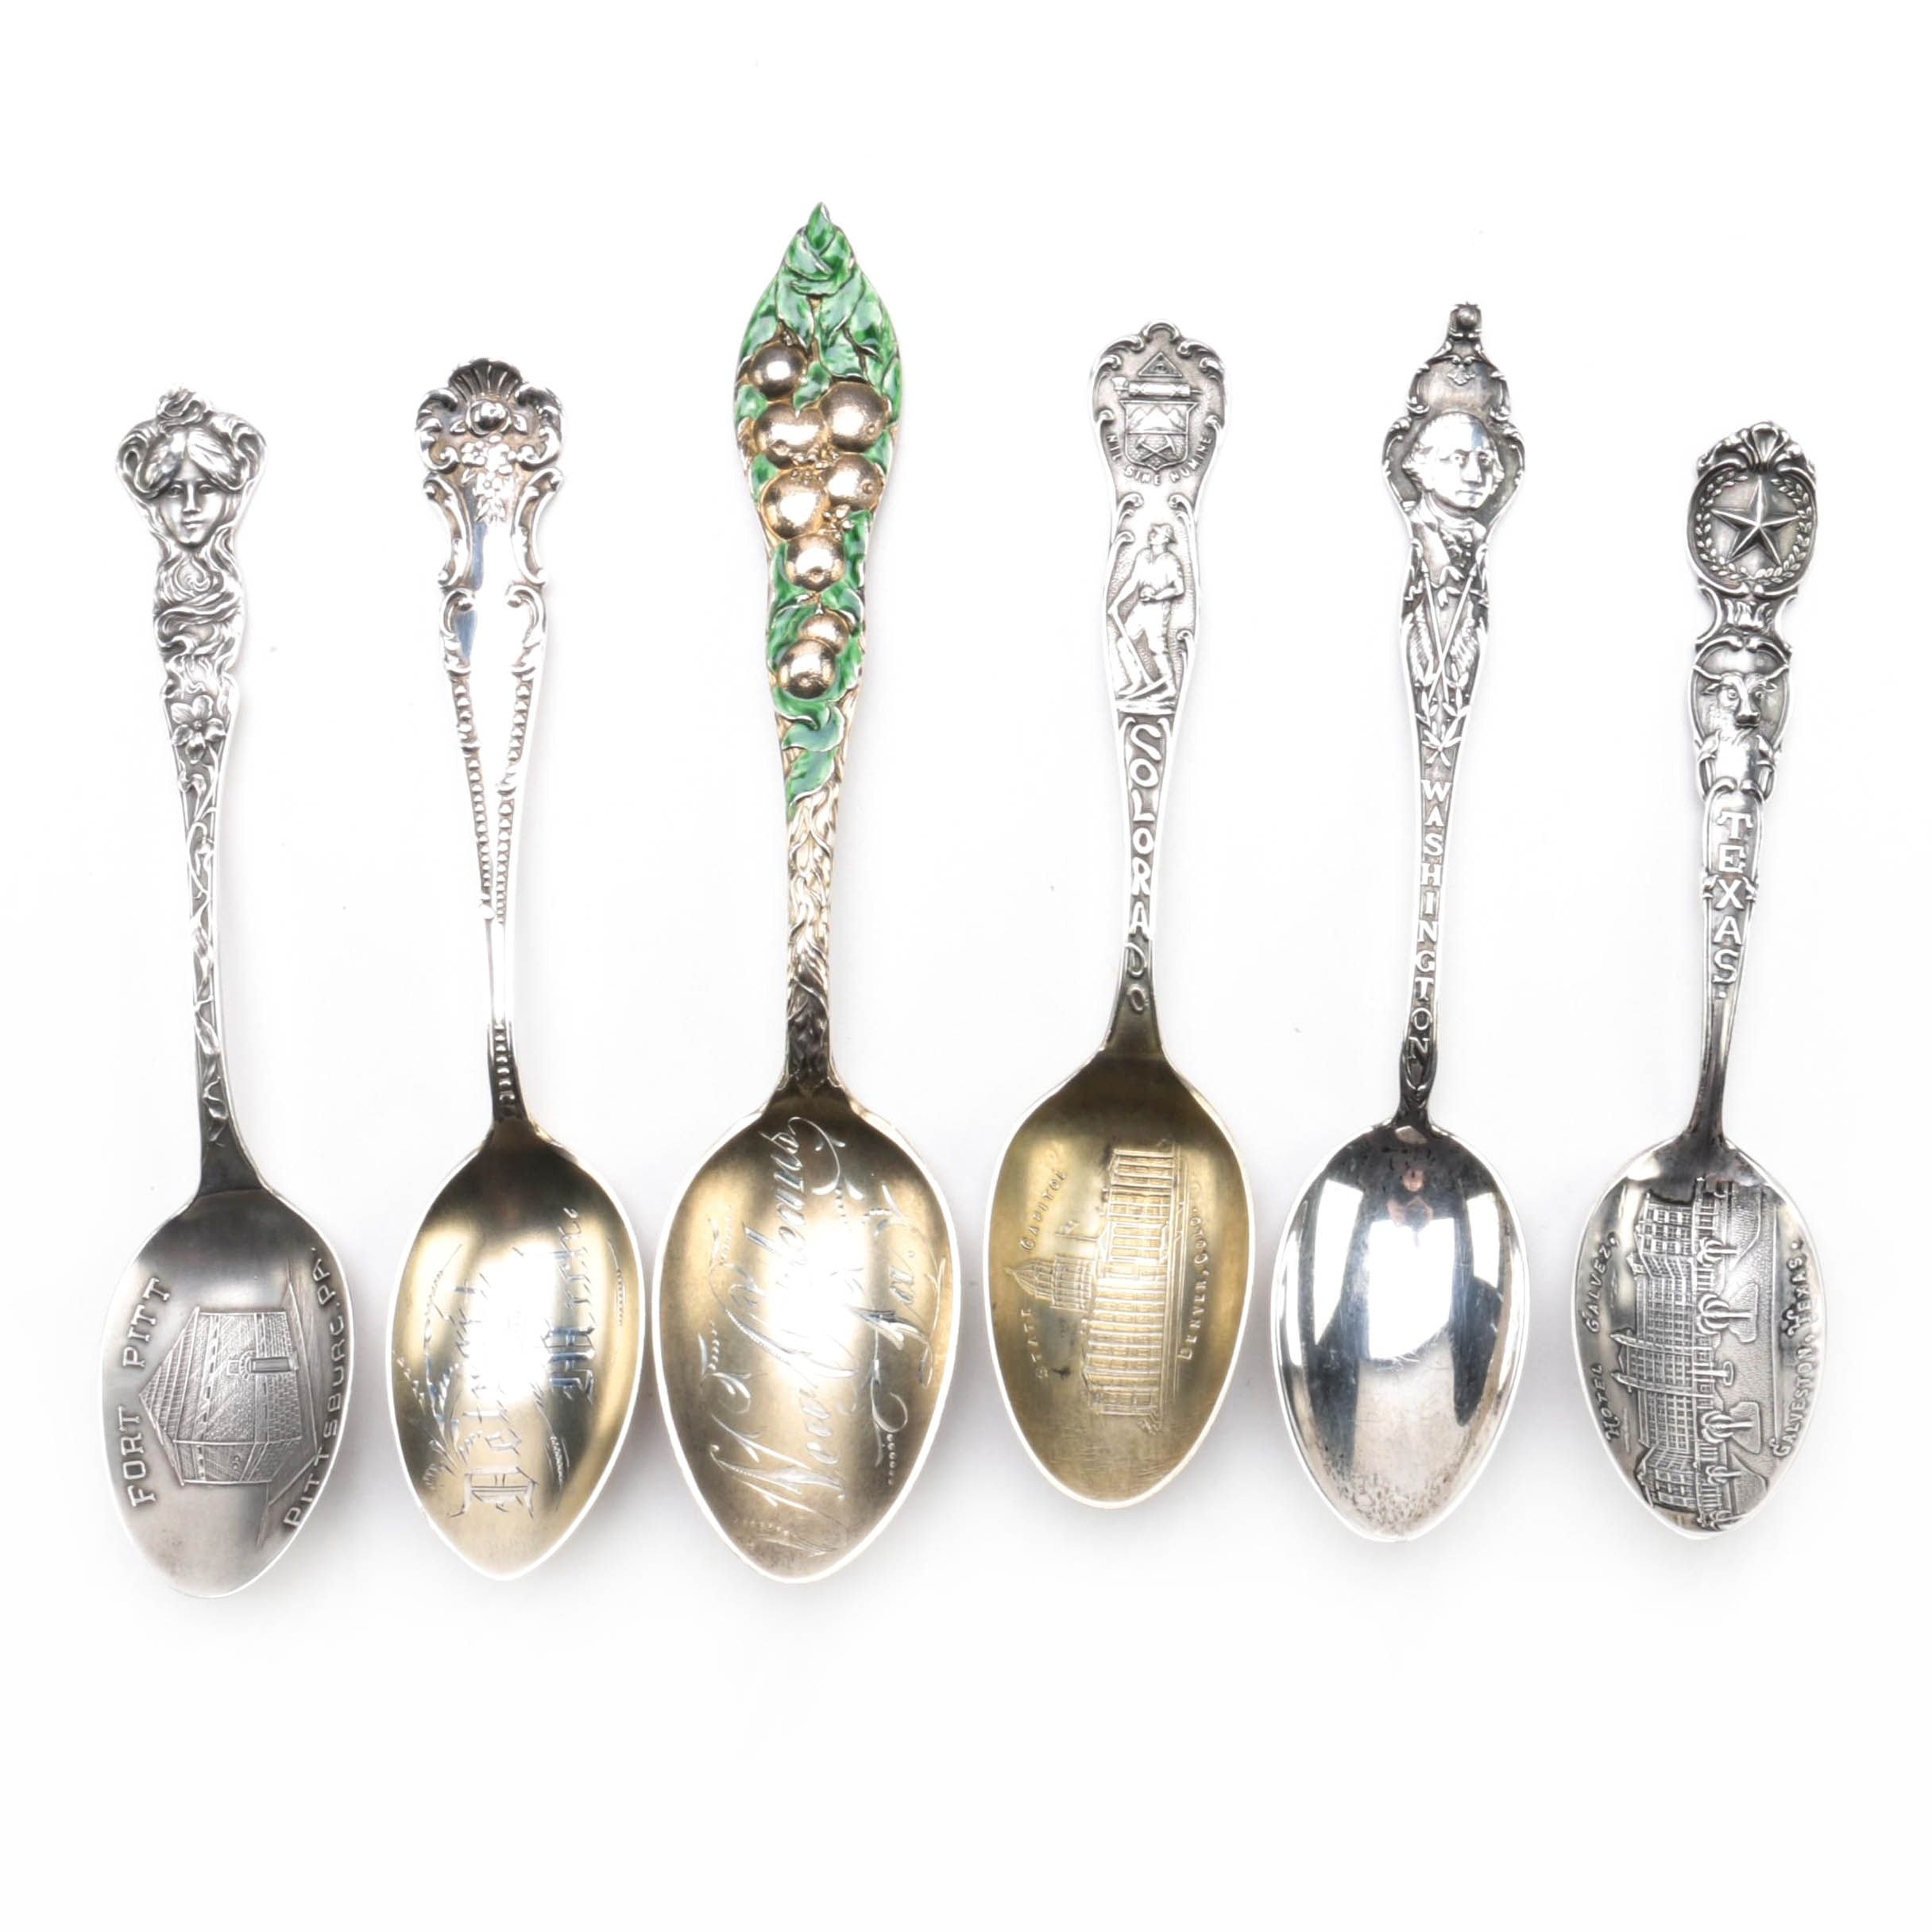 Antique Simmons & Paye Sterling Spoon and Other Souvenir Spoons